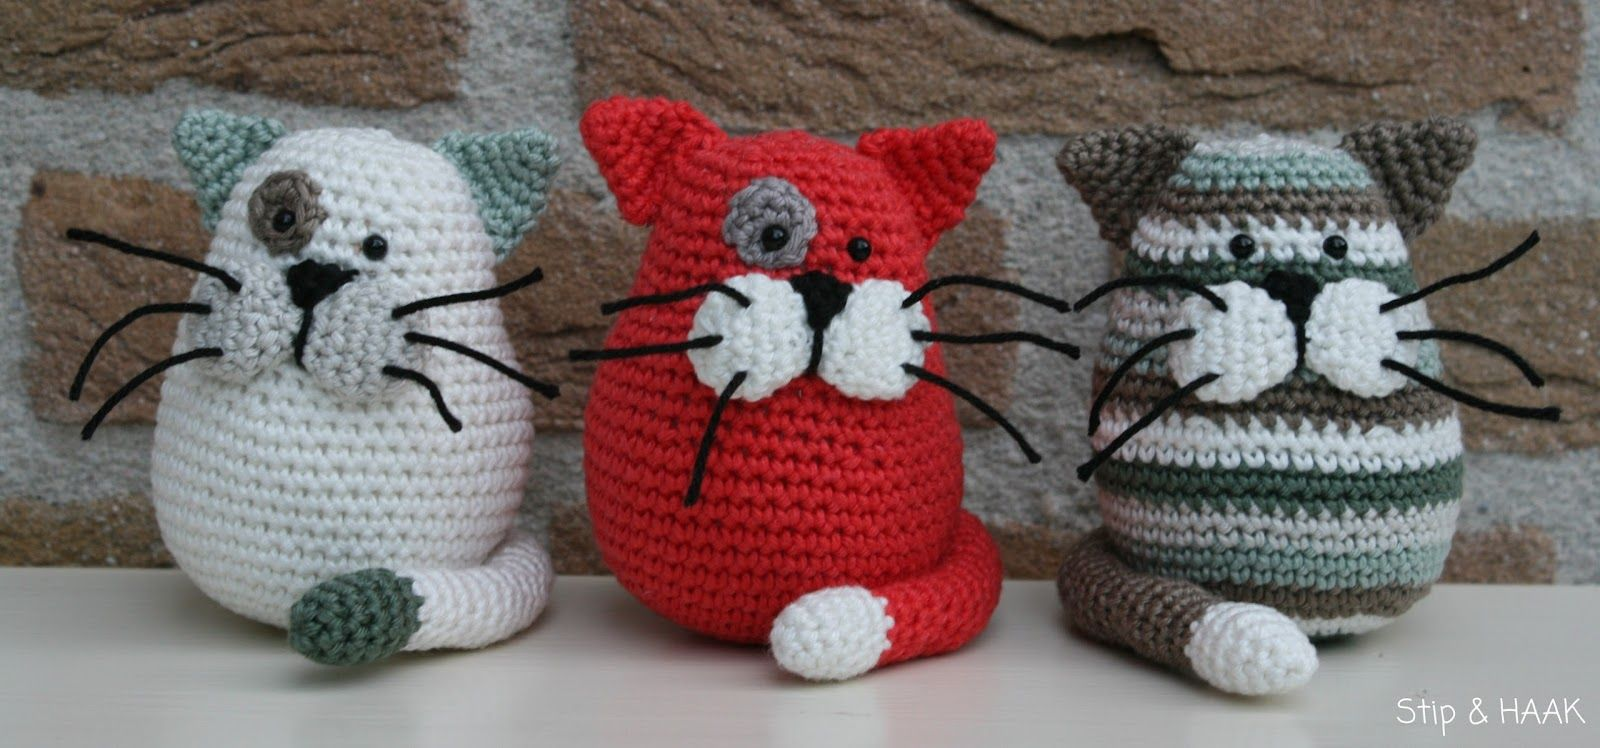 Dots hook free patterns crochet pinterest patrones dots hook free patterns amigurumi cat rat bunny pig and dog all very cute but patterns are not in english bankloansurffo Image collections